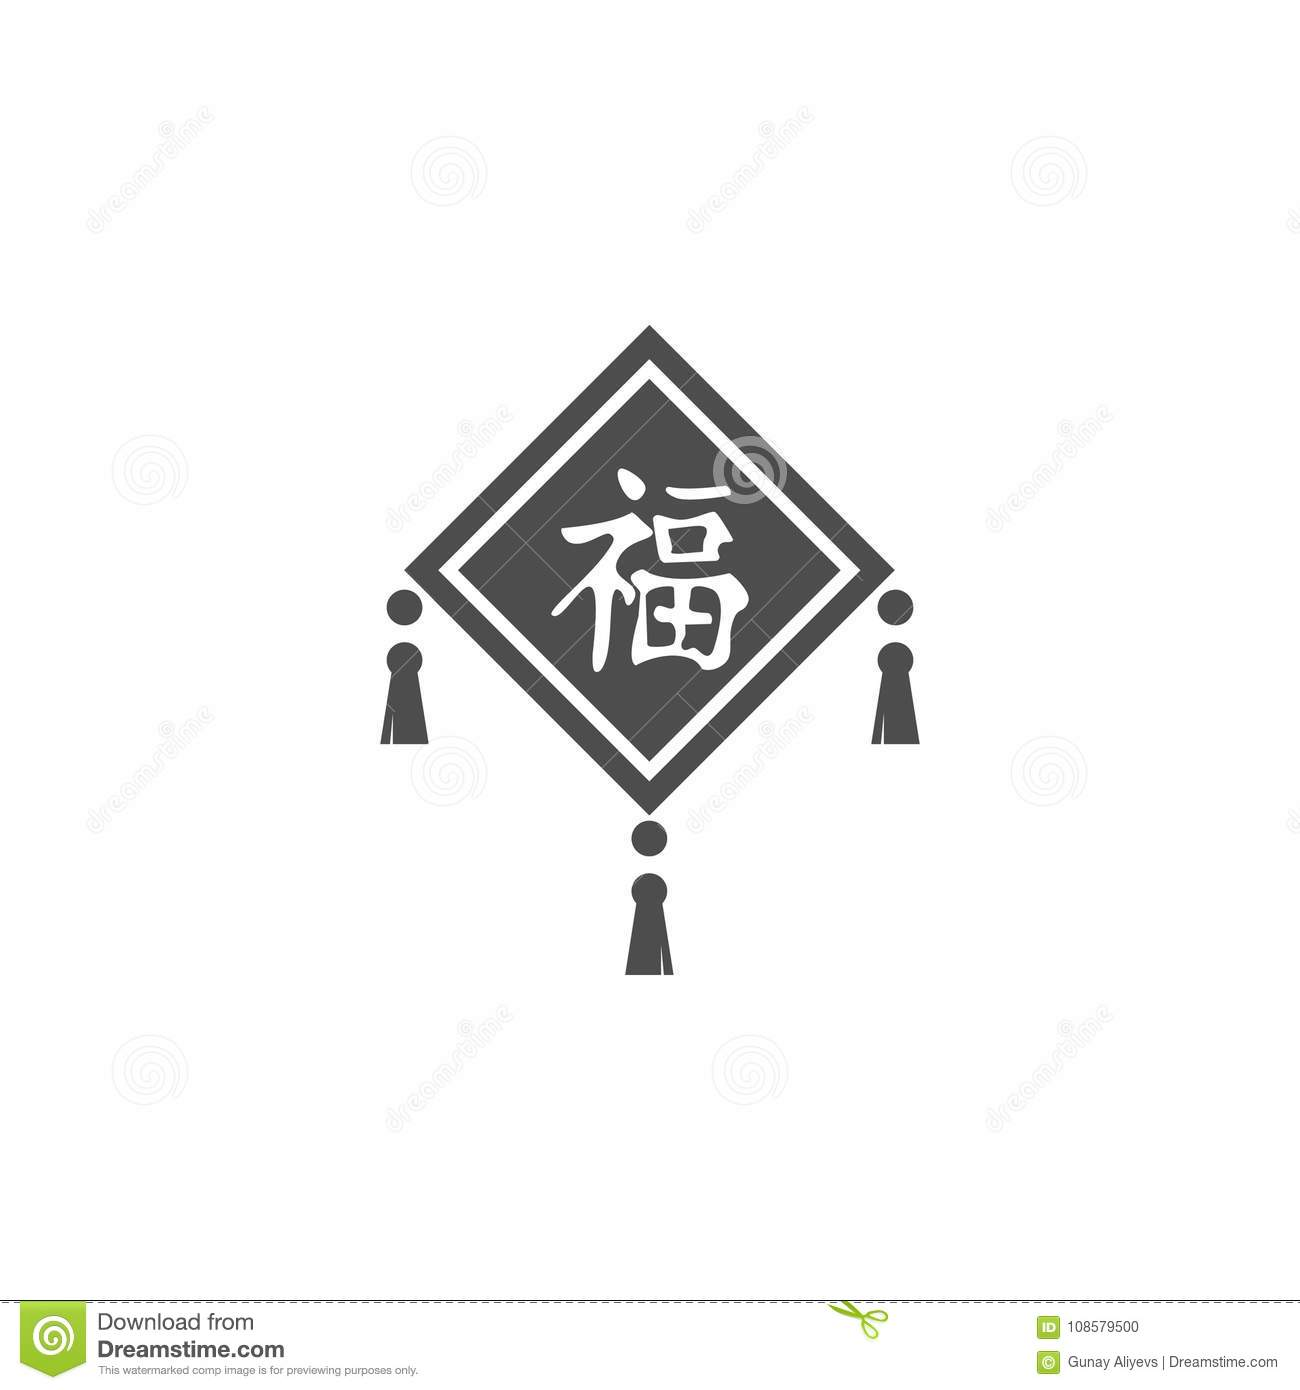 Chinese Decor Icon. Elements Of Chinese Culture Icon